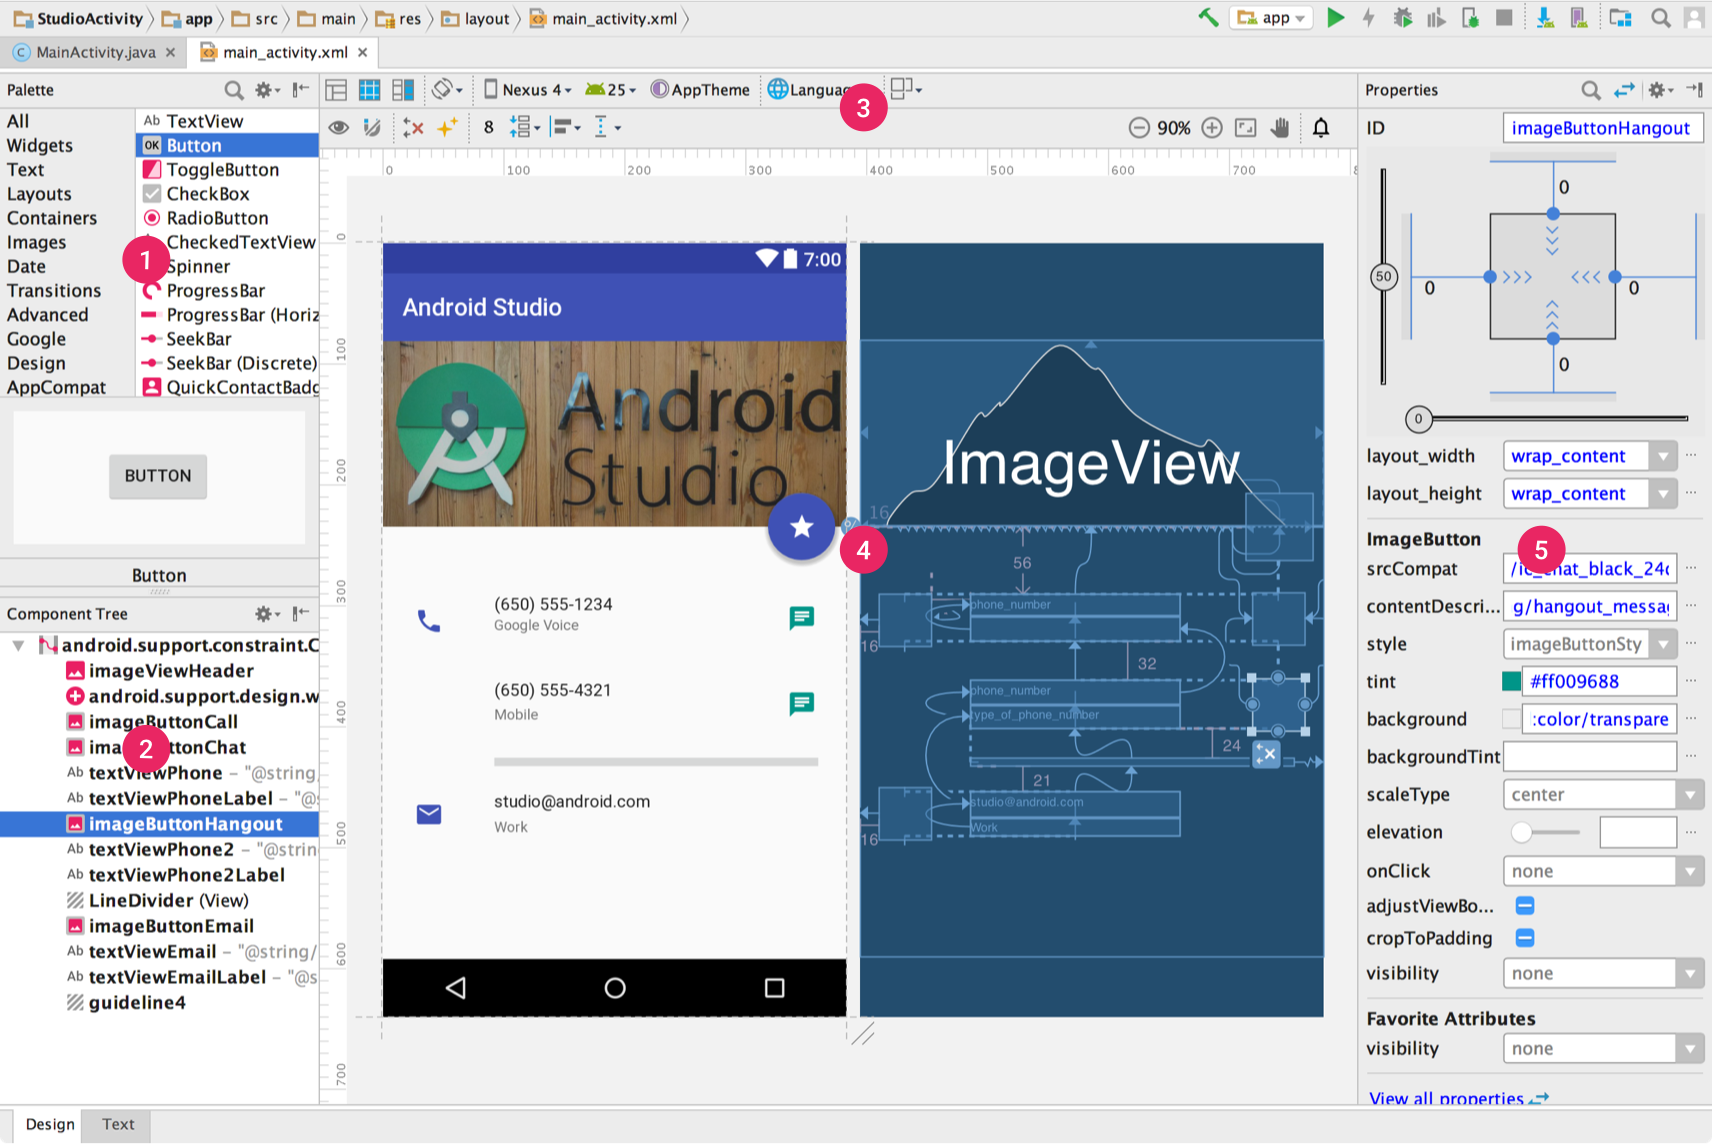 Build a UI with Layout Editor | Android Studio